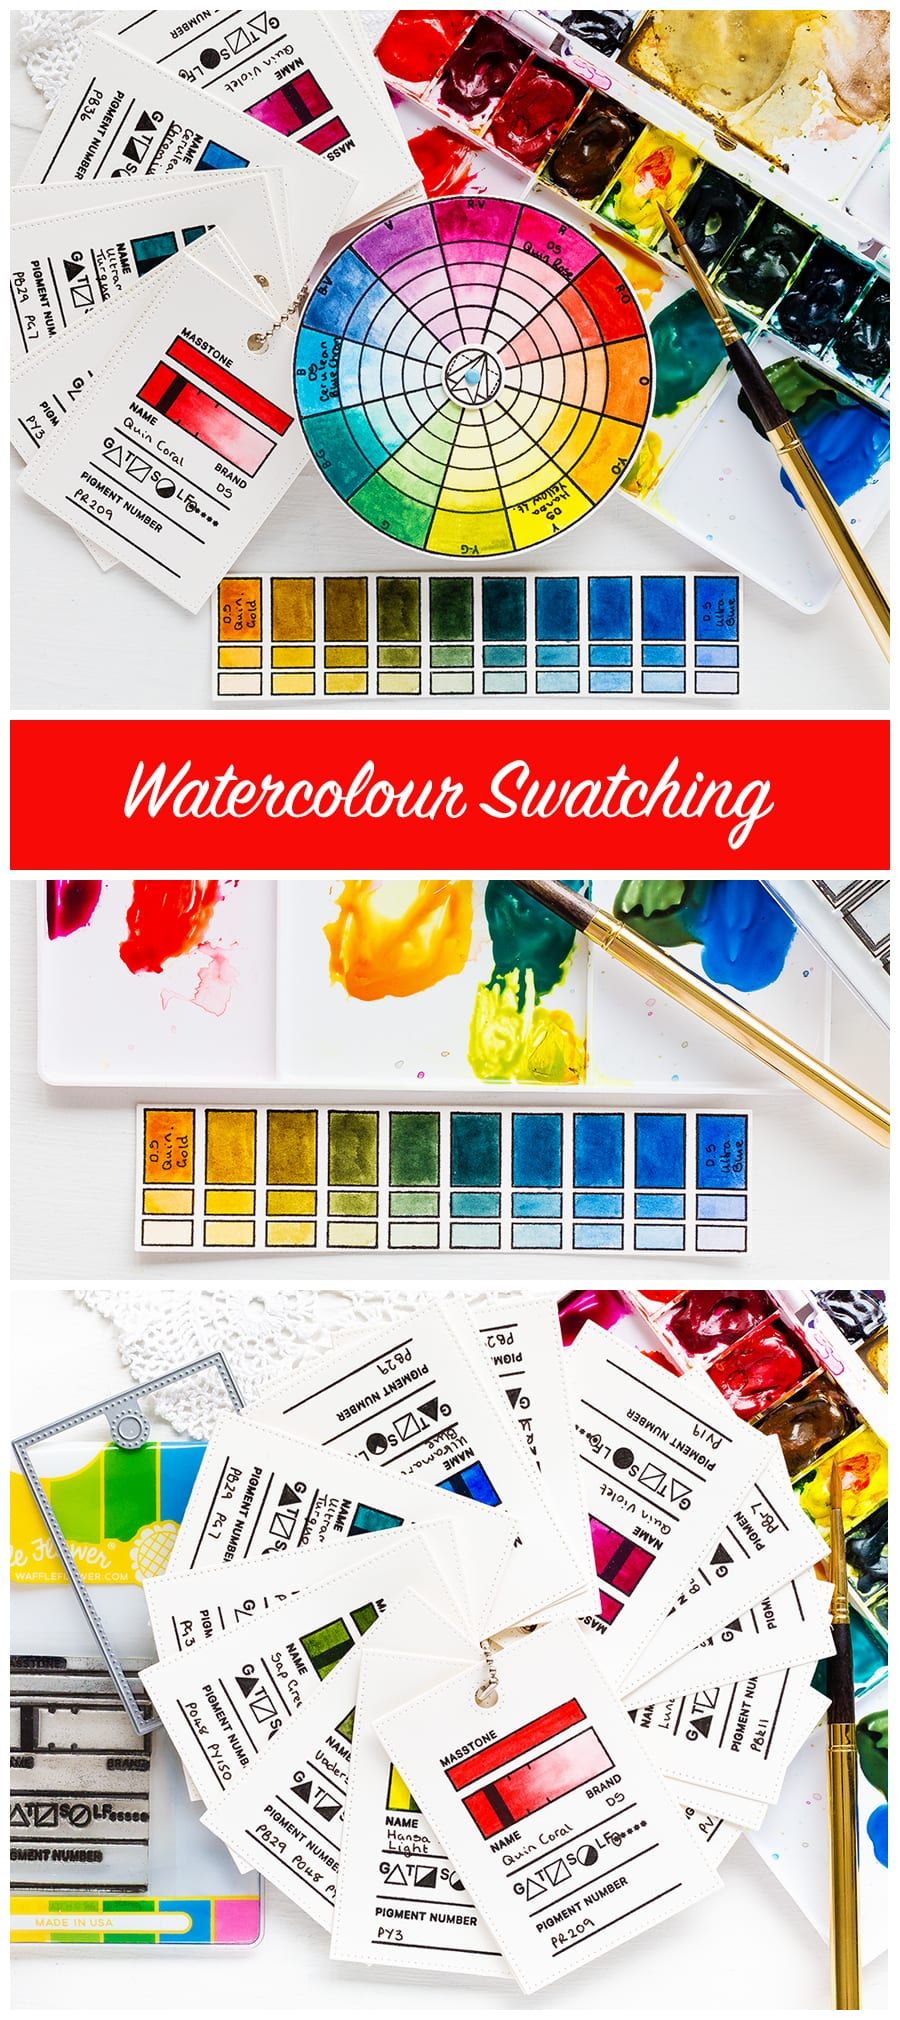 Colour swatching watercolours, colour wheels, colour mixing, watercolour swatches by Debby Hughes. Find out more here: https://limedoodledesign.com/2018/08/watercolour-swatching-colour-exploration/